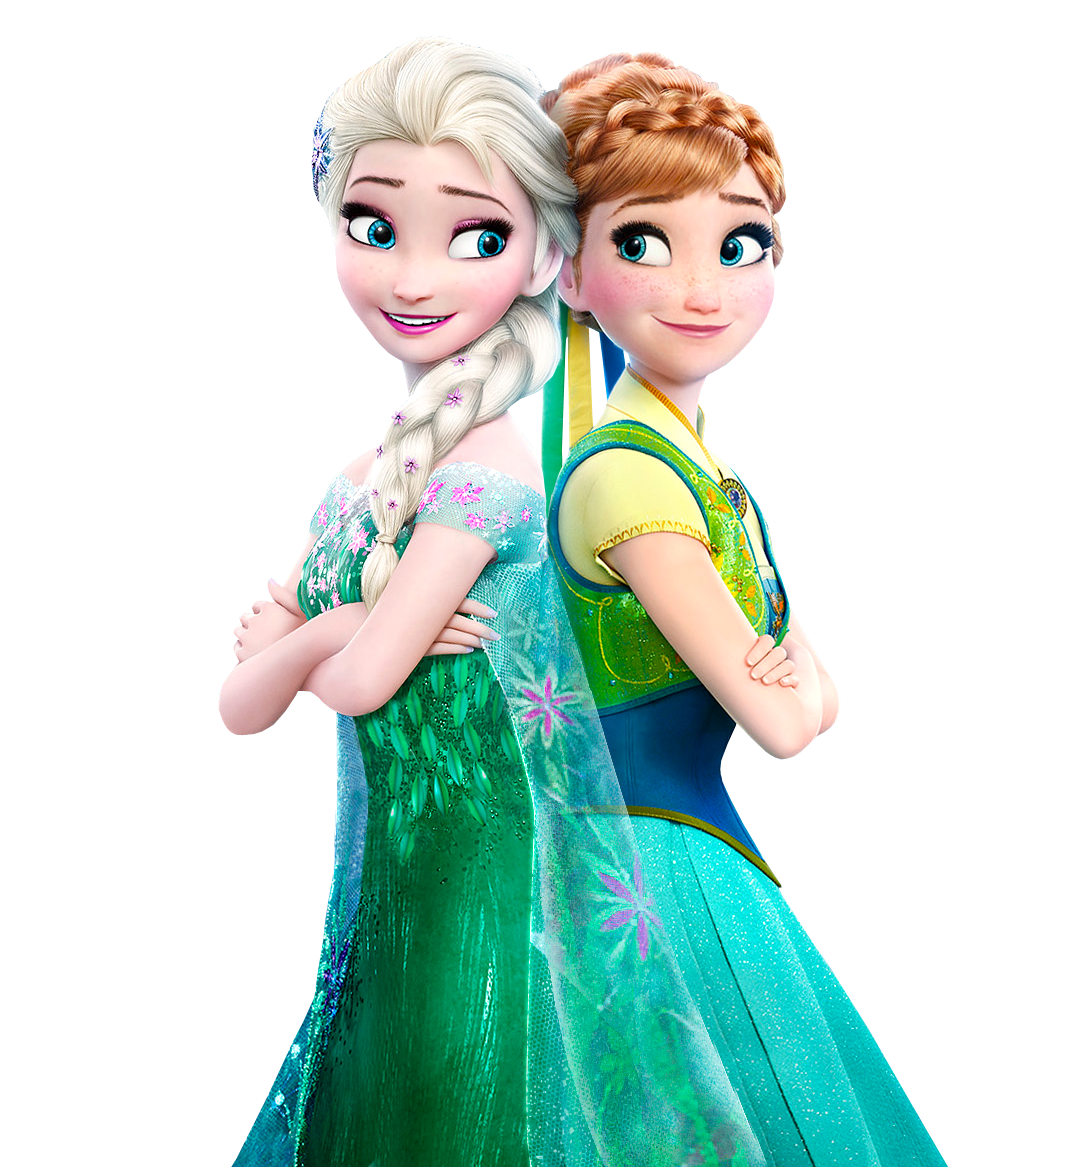 Elsa and Anna Frozen Fever - Vector by Simmeh on DeviantArt